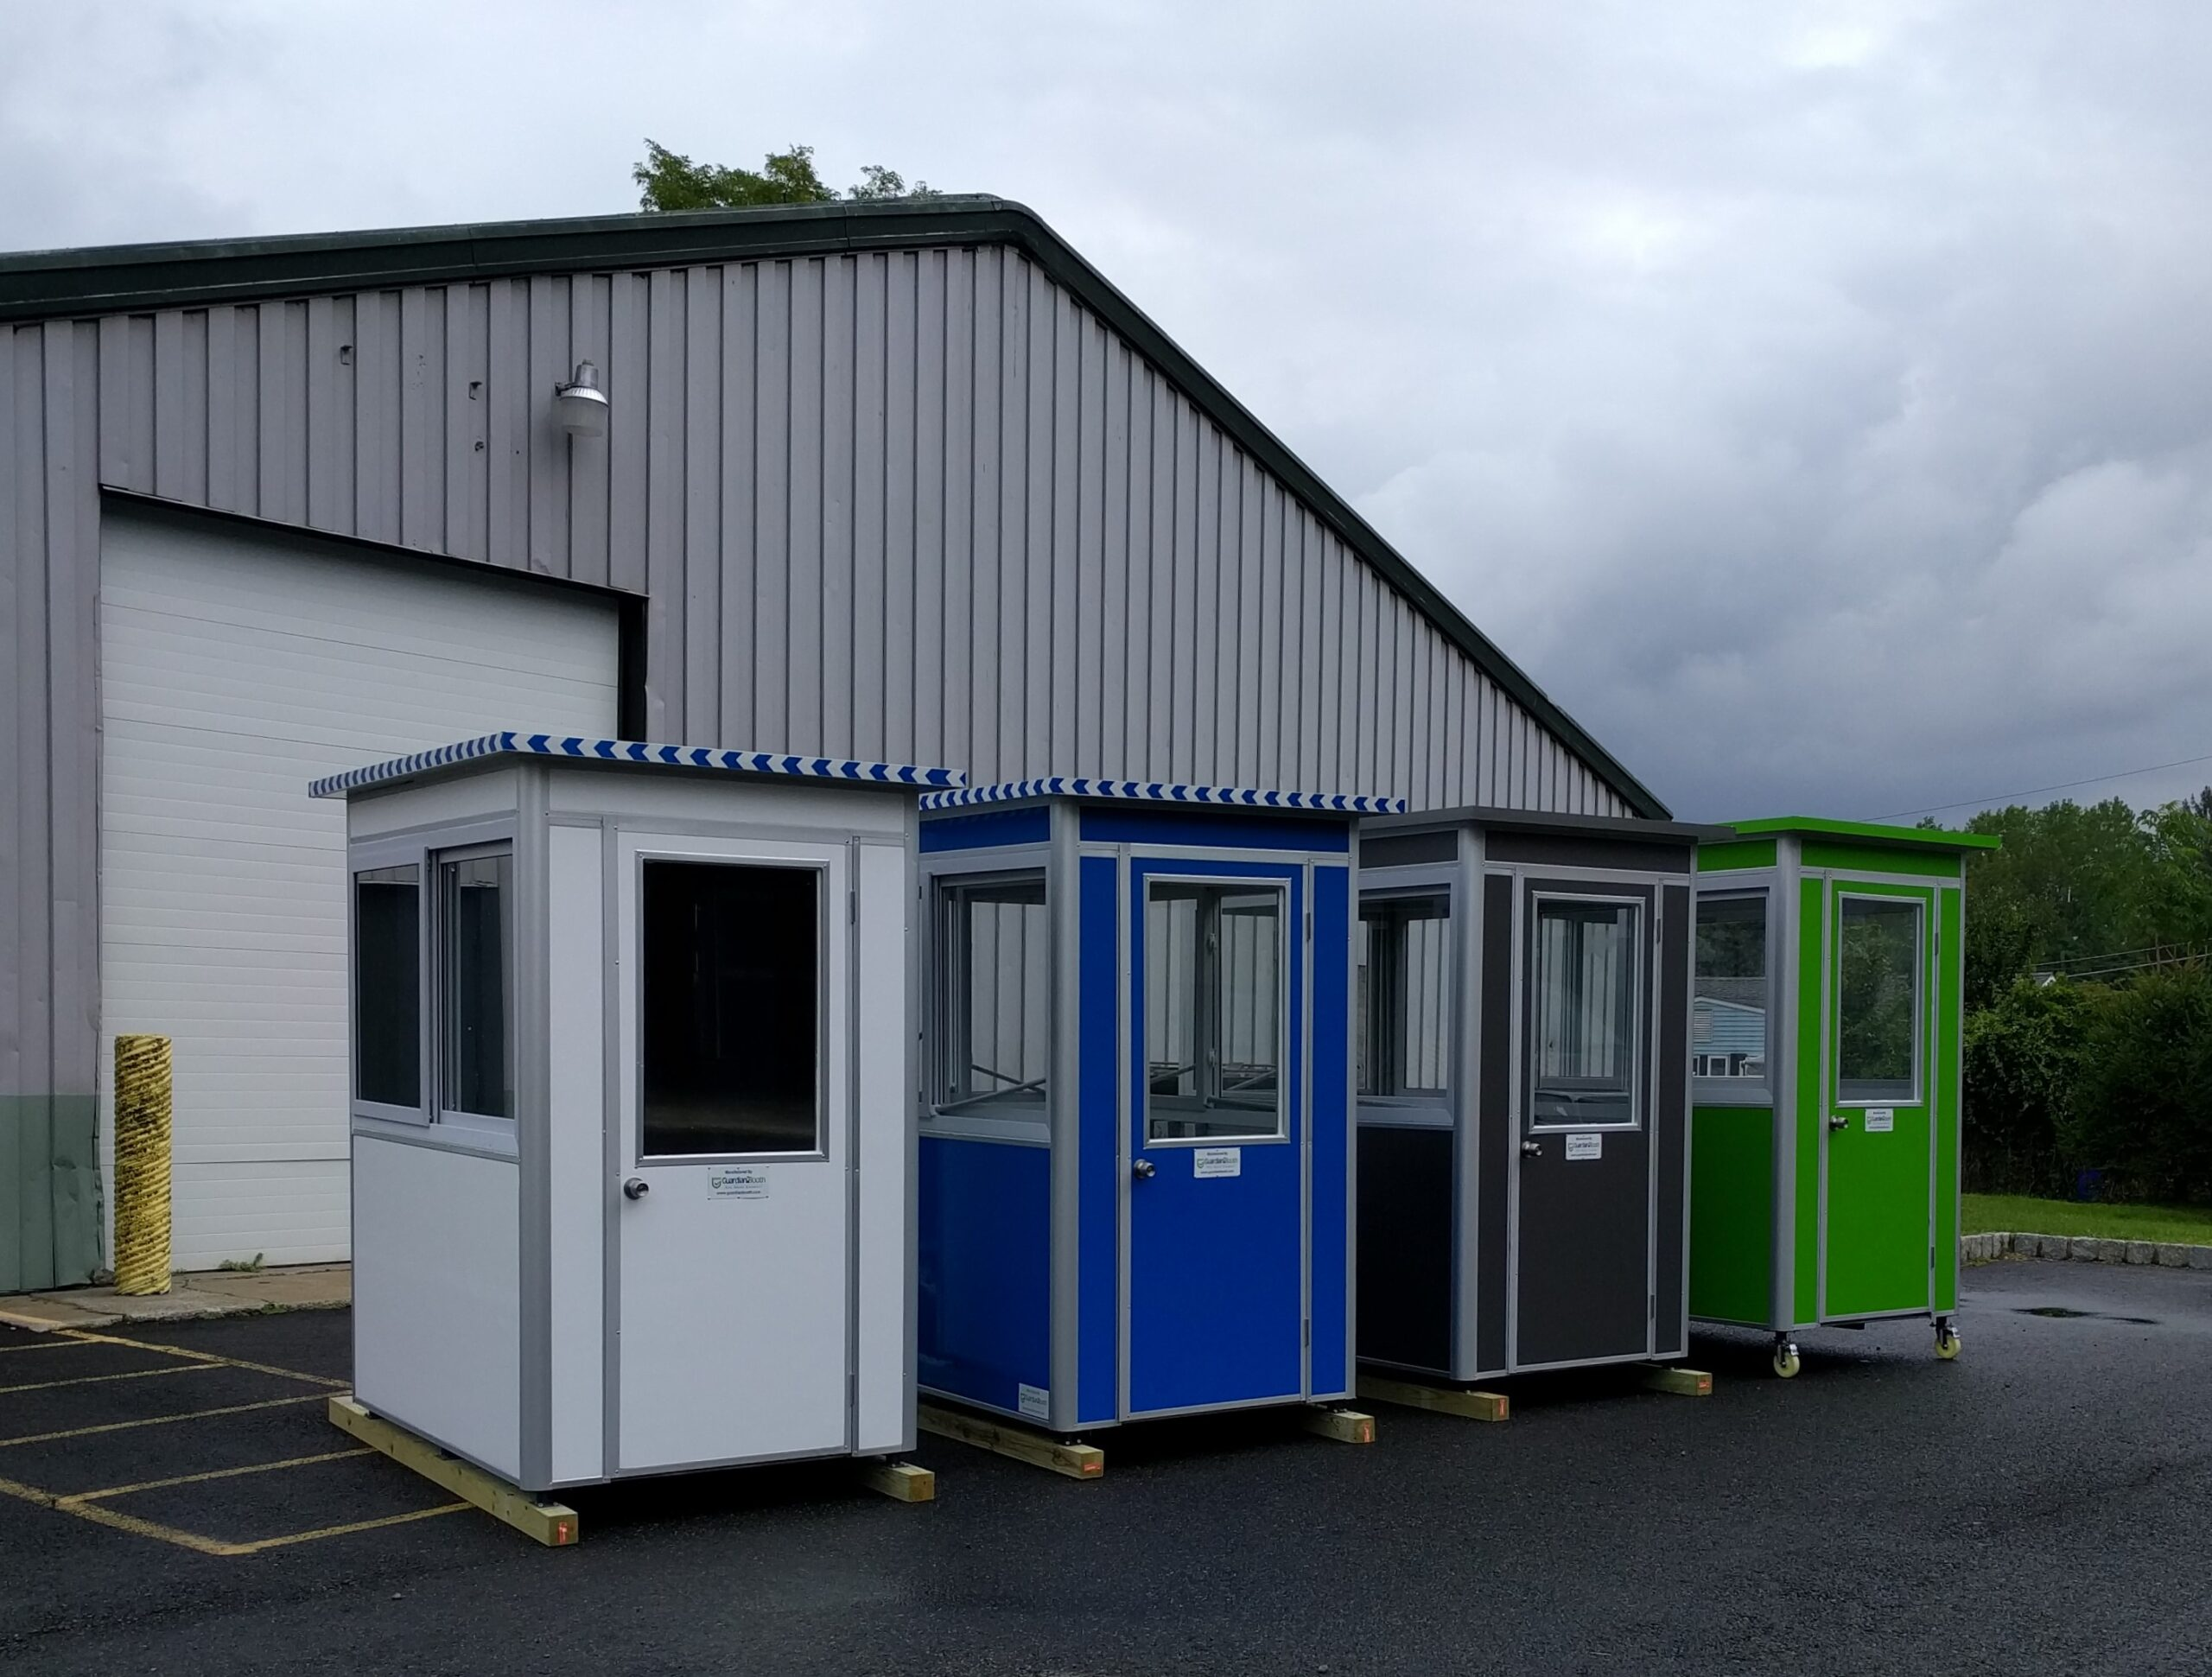 Colored guardian booths outside warehouse